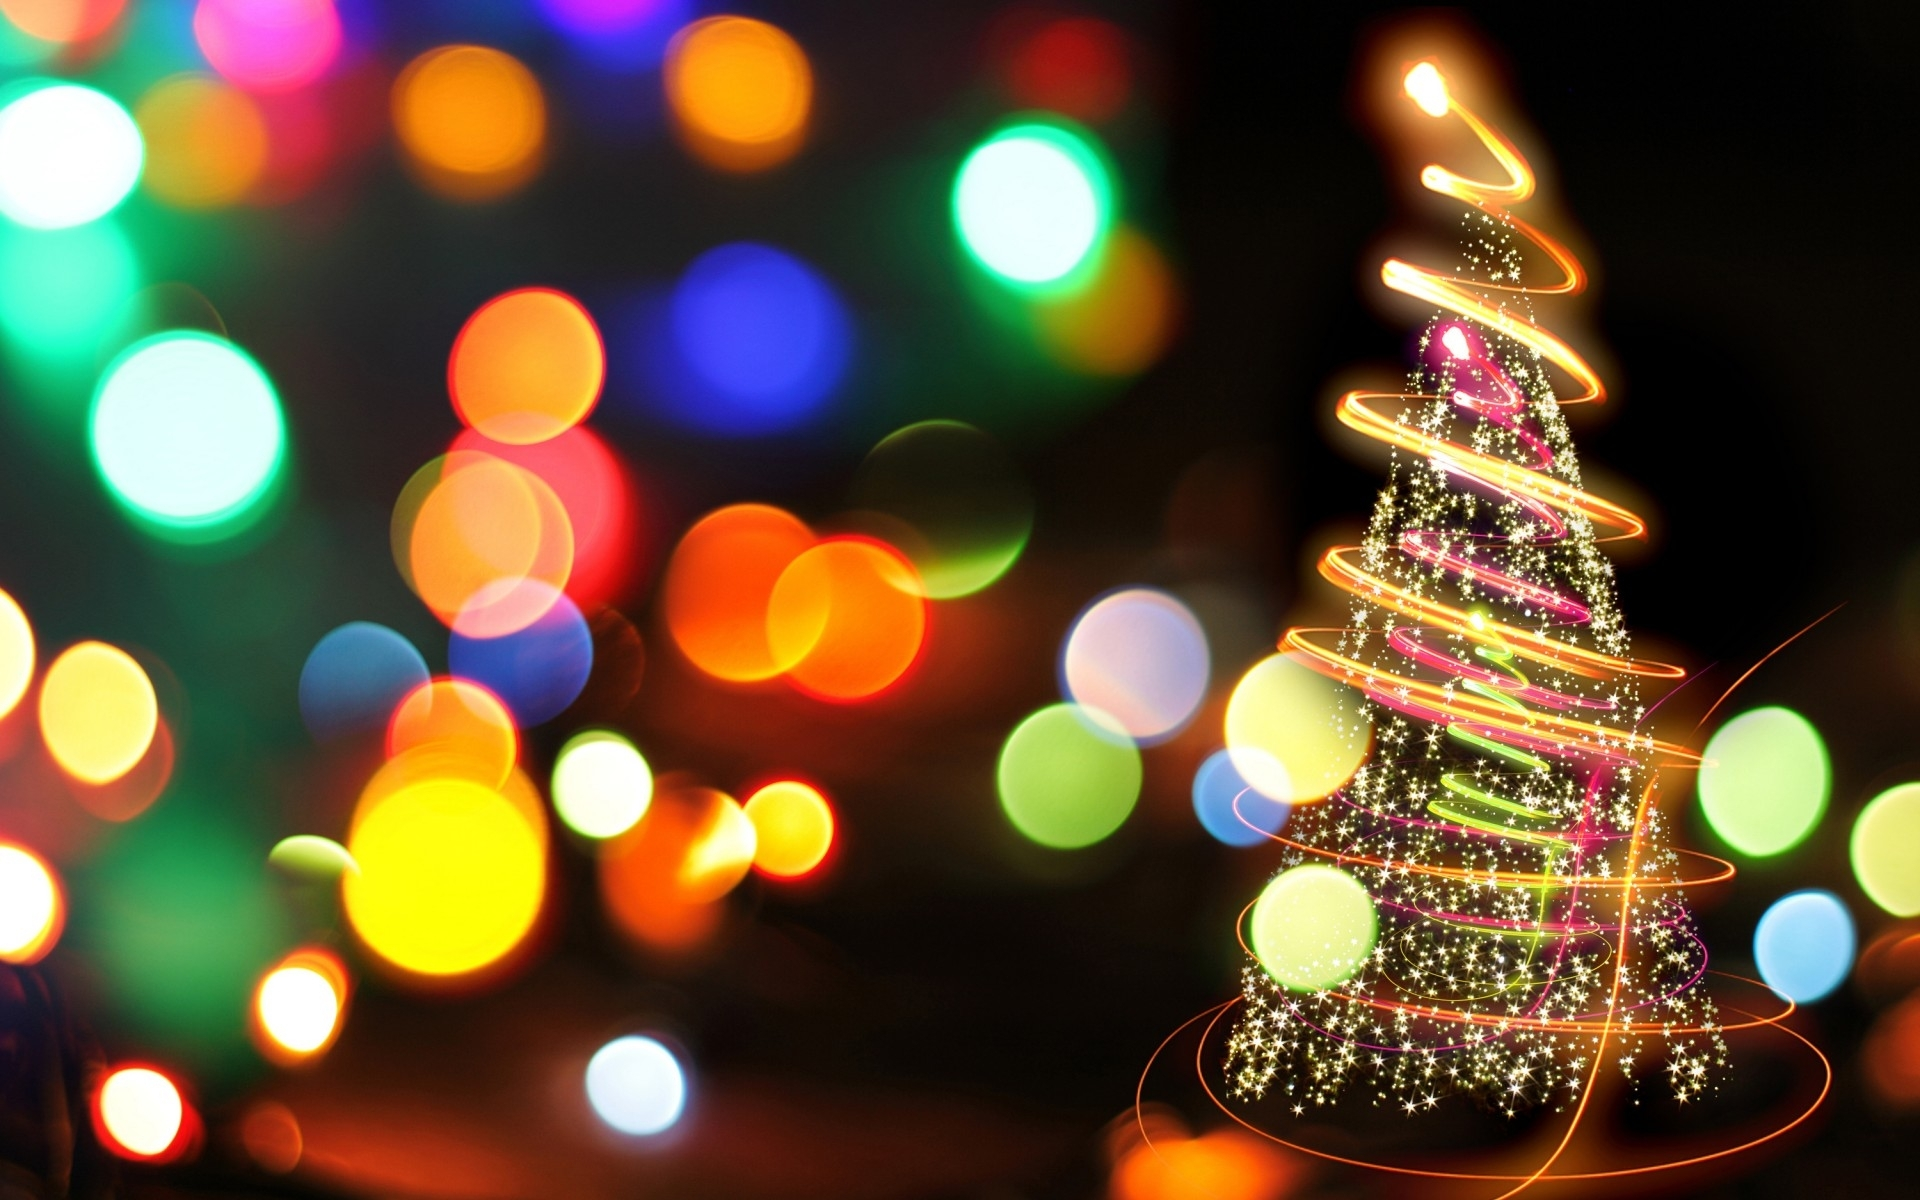 10 new colorful christmas lights wallpaper full hd 1920×1080 for pc